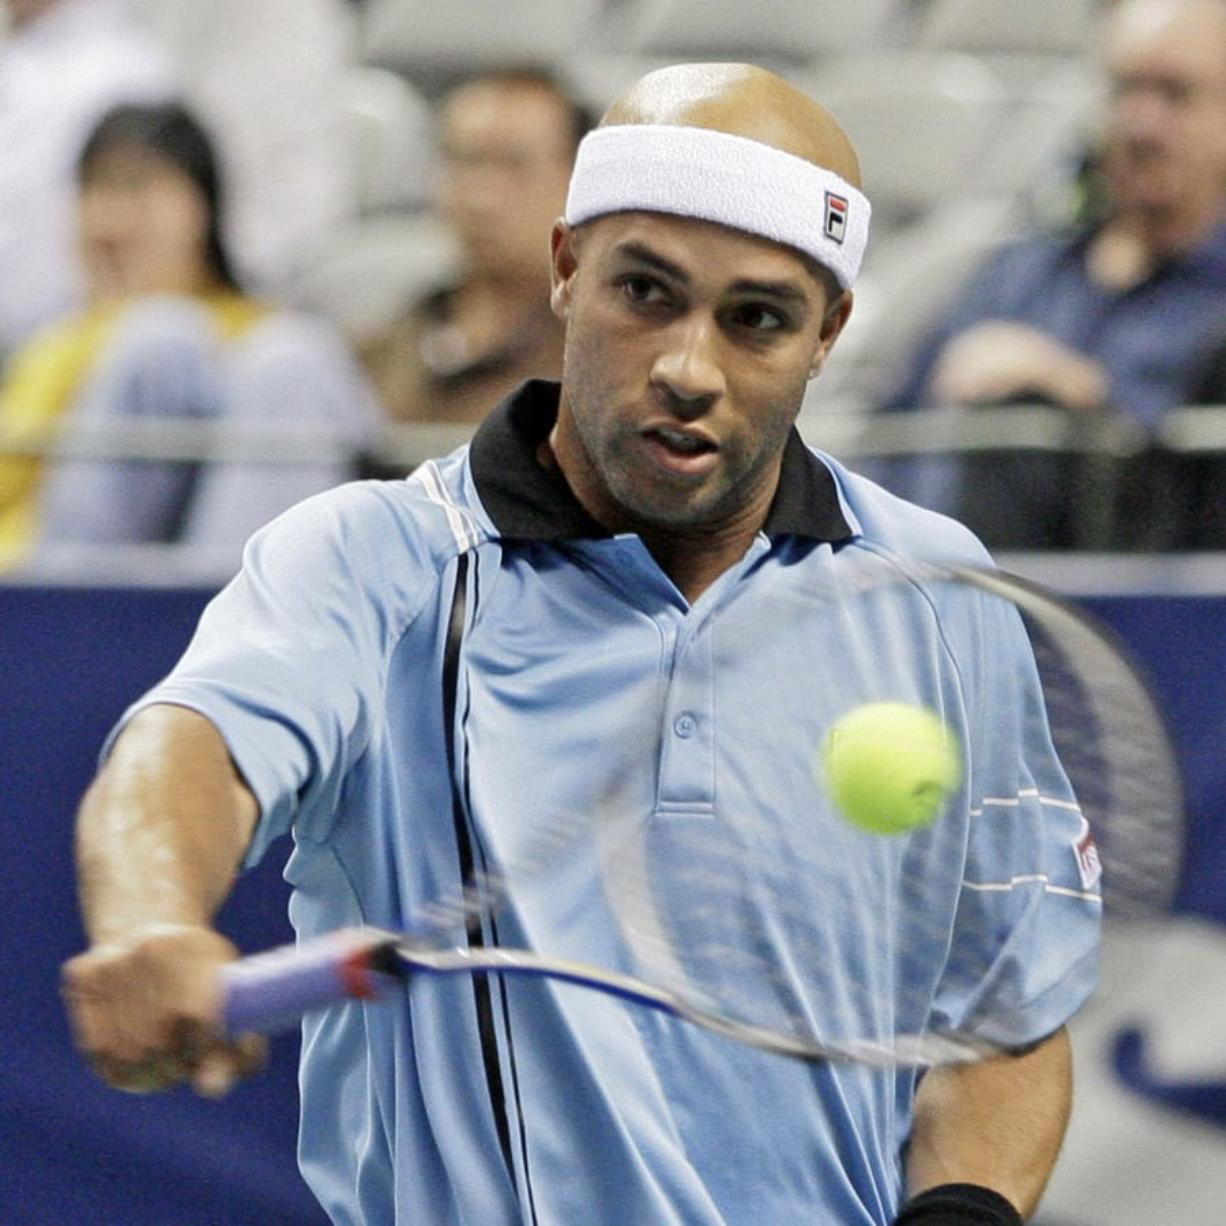 Former U.S. tennis player James Blake will visit the Vancouver Tennis Center on Nov. 3, 2018.